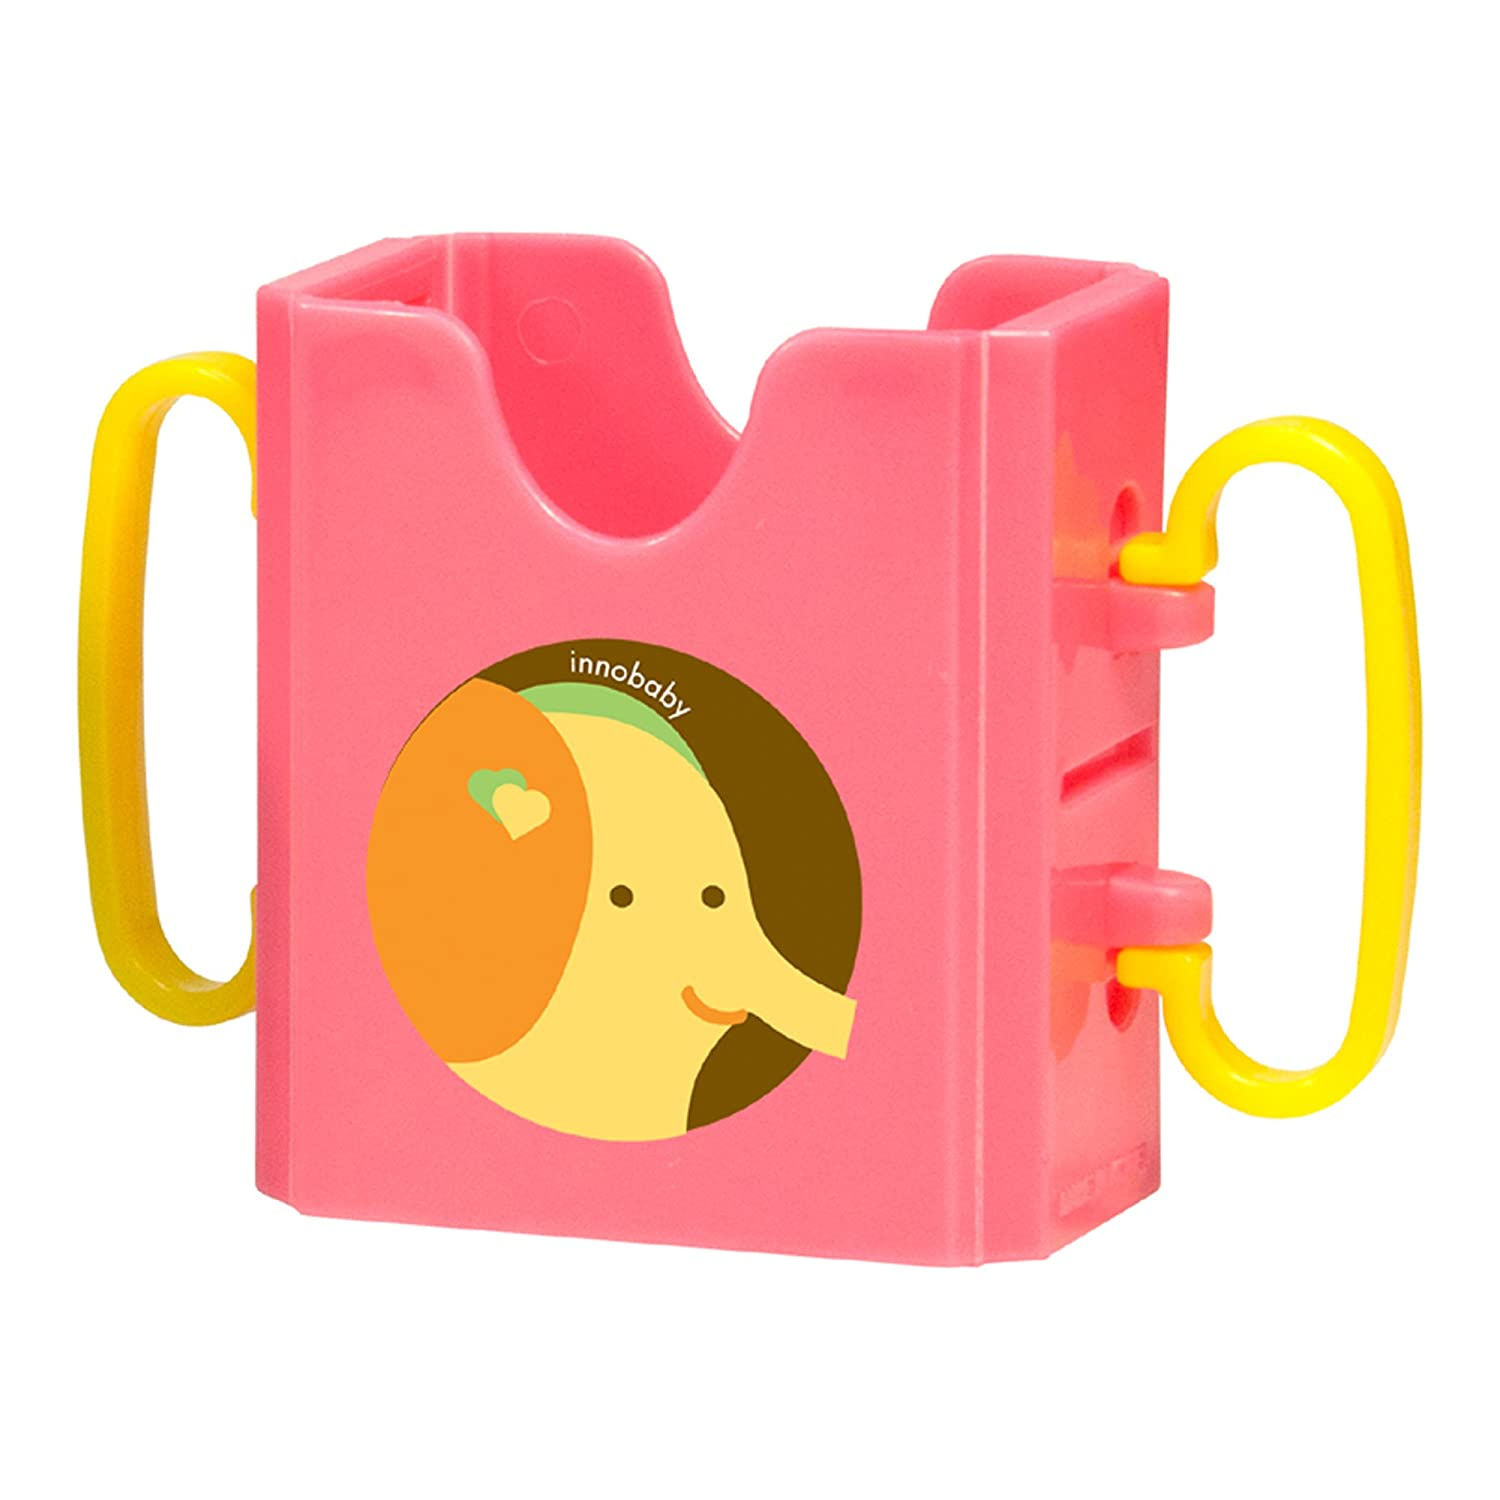 Innobaby Packin' SMART Keepaa Juice Box Holder, Strawberry by Innobaby   B006T2P9VI